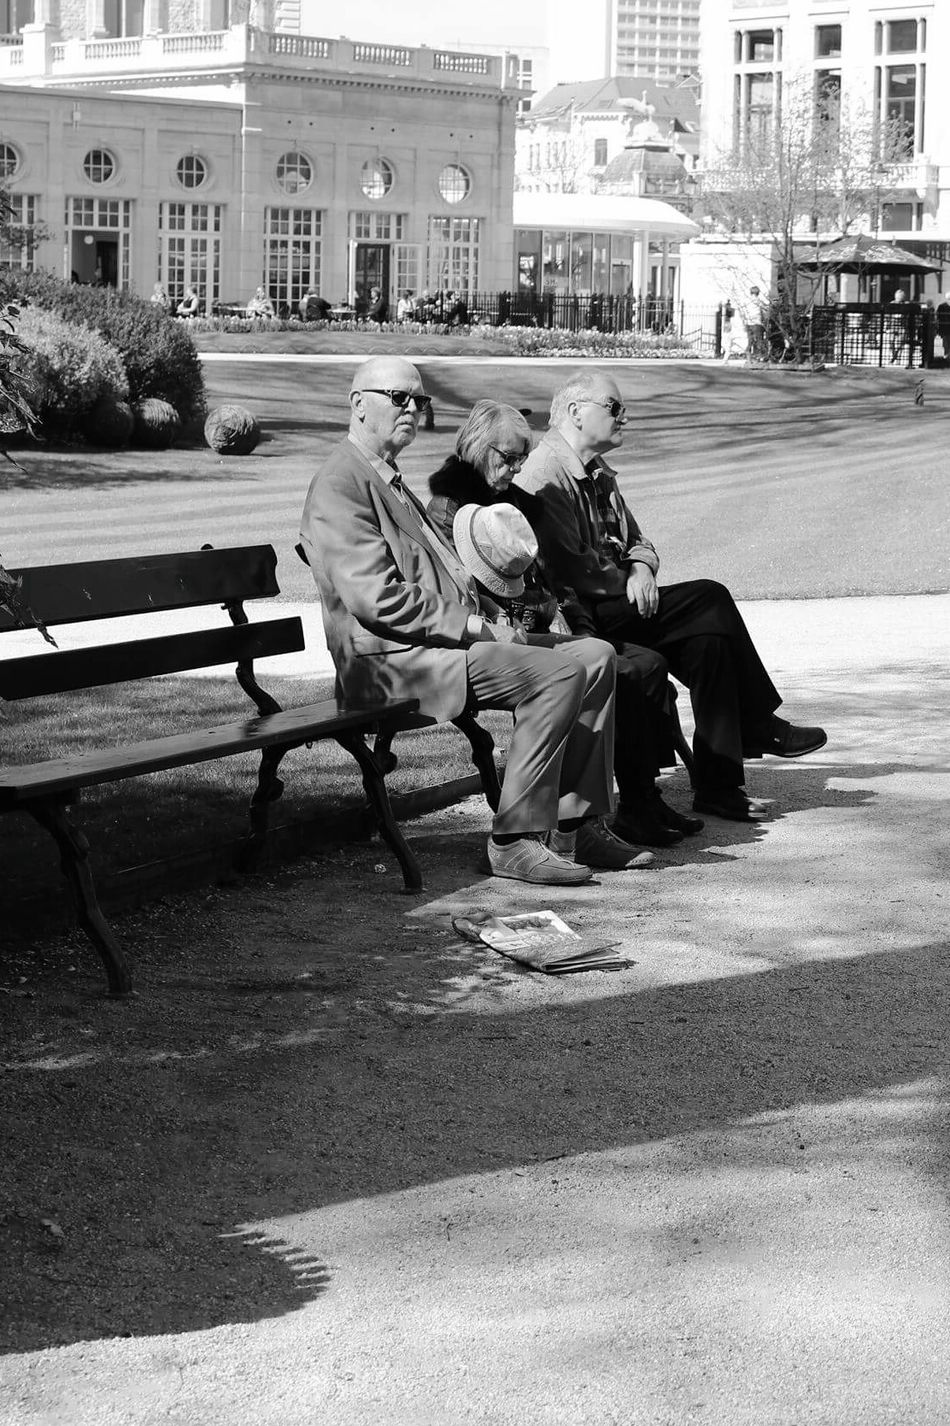 Sitting Mature Adult Park - Man Made Space City Adult Outdoors Men Day People Grass Tree Human Body Part Cityscape City EyeEmNewHere Old People Newspaper Parc Sitting Outside Sitting In The Sun Sunny Day Spring Friendship Goals Peoplephotography People And Places TCPM